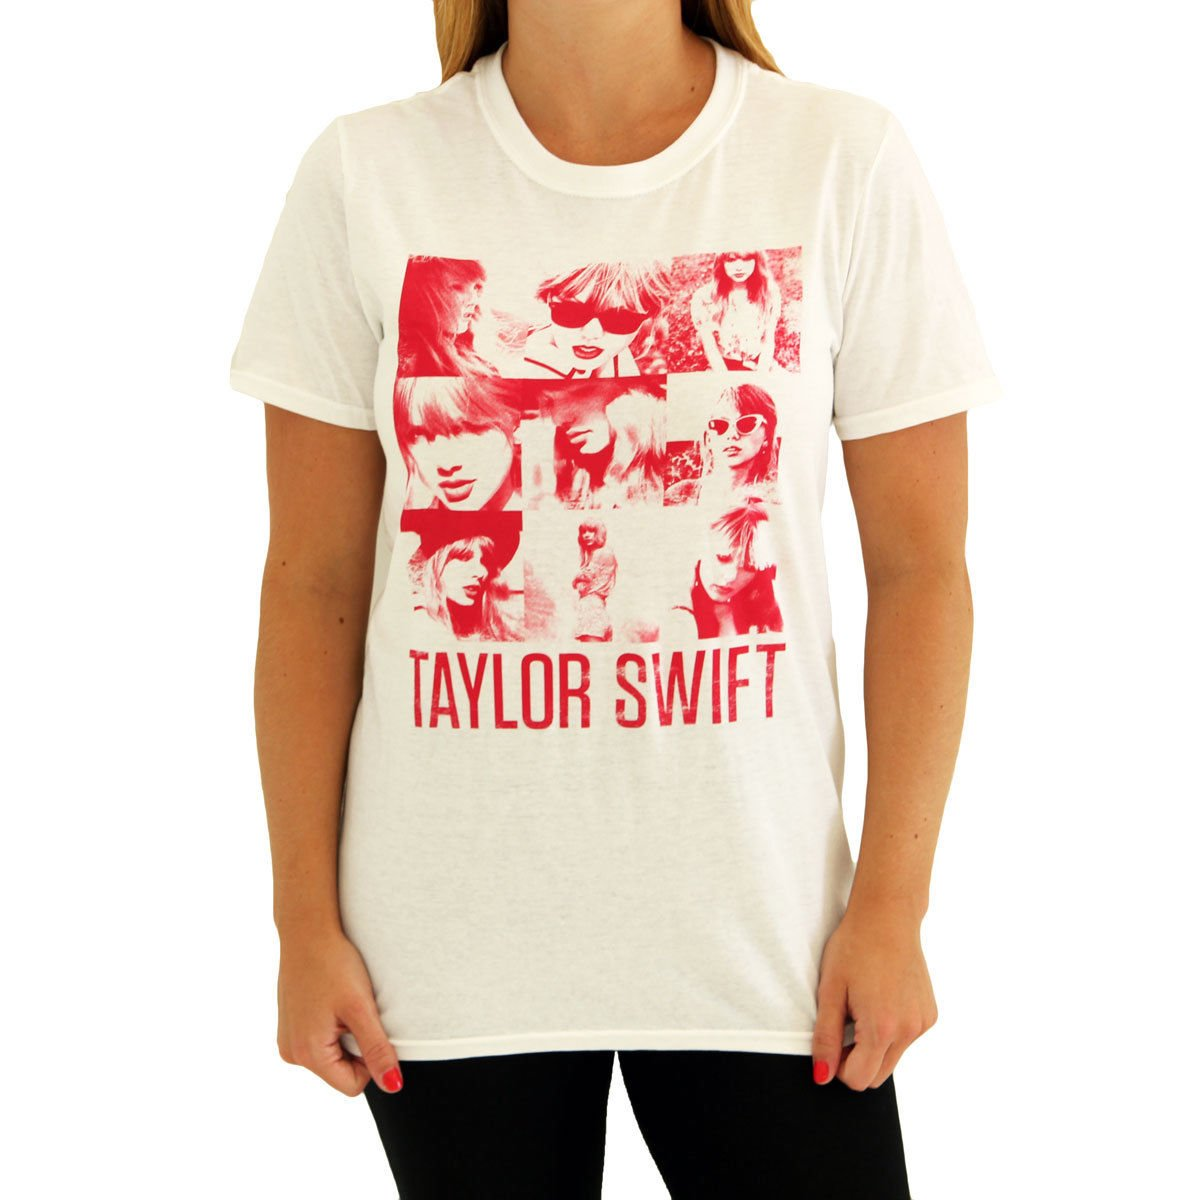 Taylor Swift White Squares Tee T-Shirt Youth Sizes (Youth Medium)